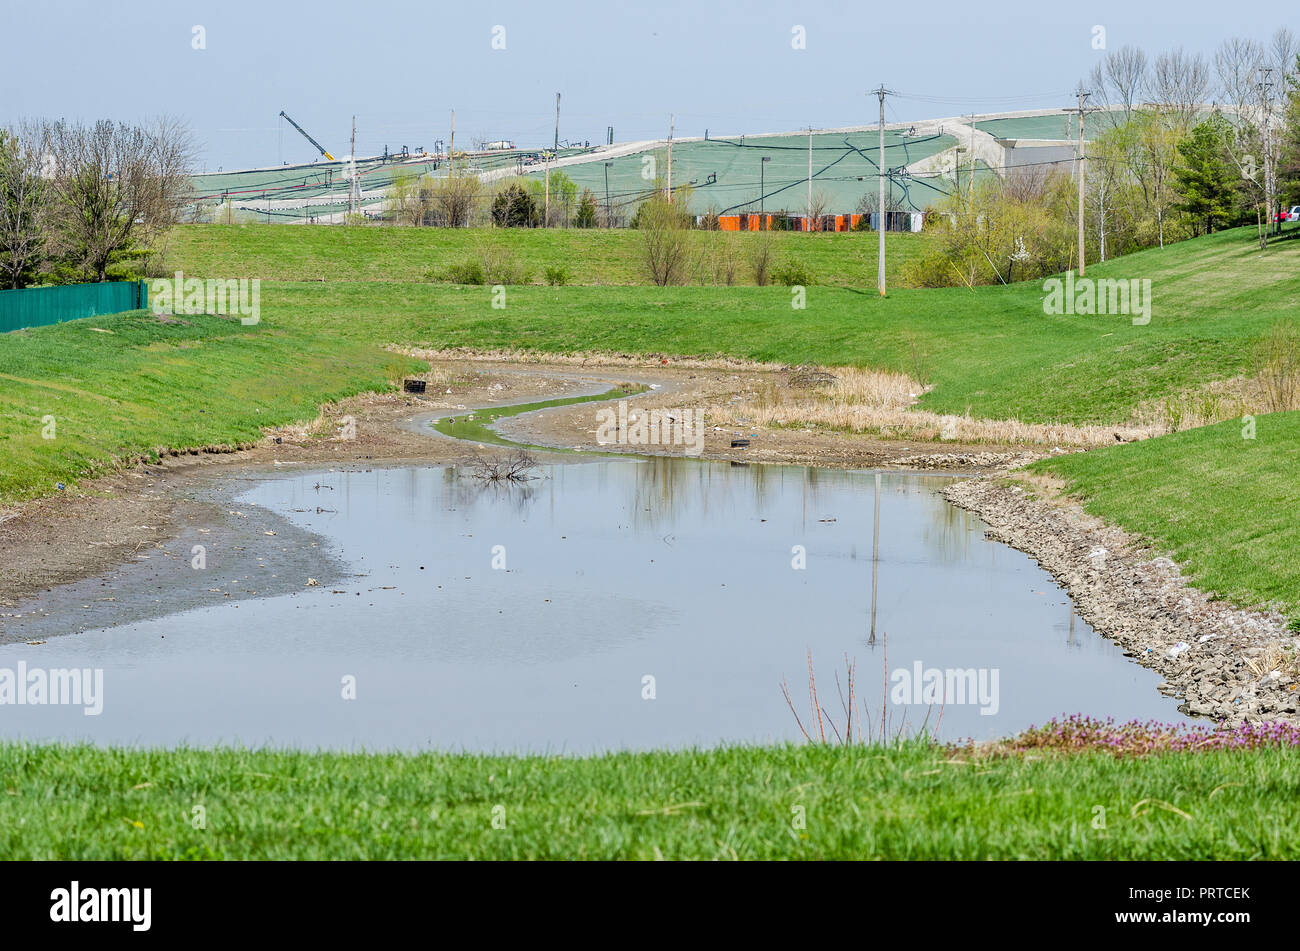 Water retention and landfill in suburban St Louis - Stock Image